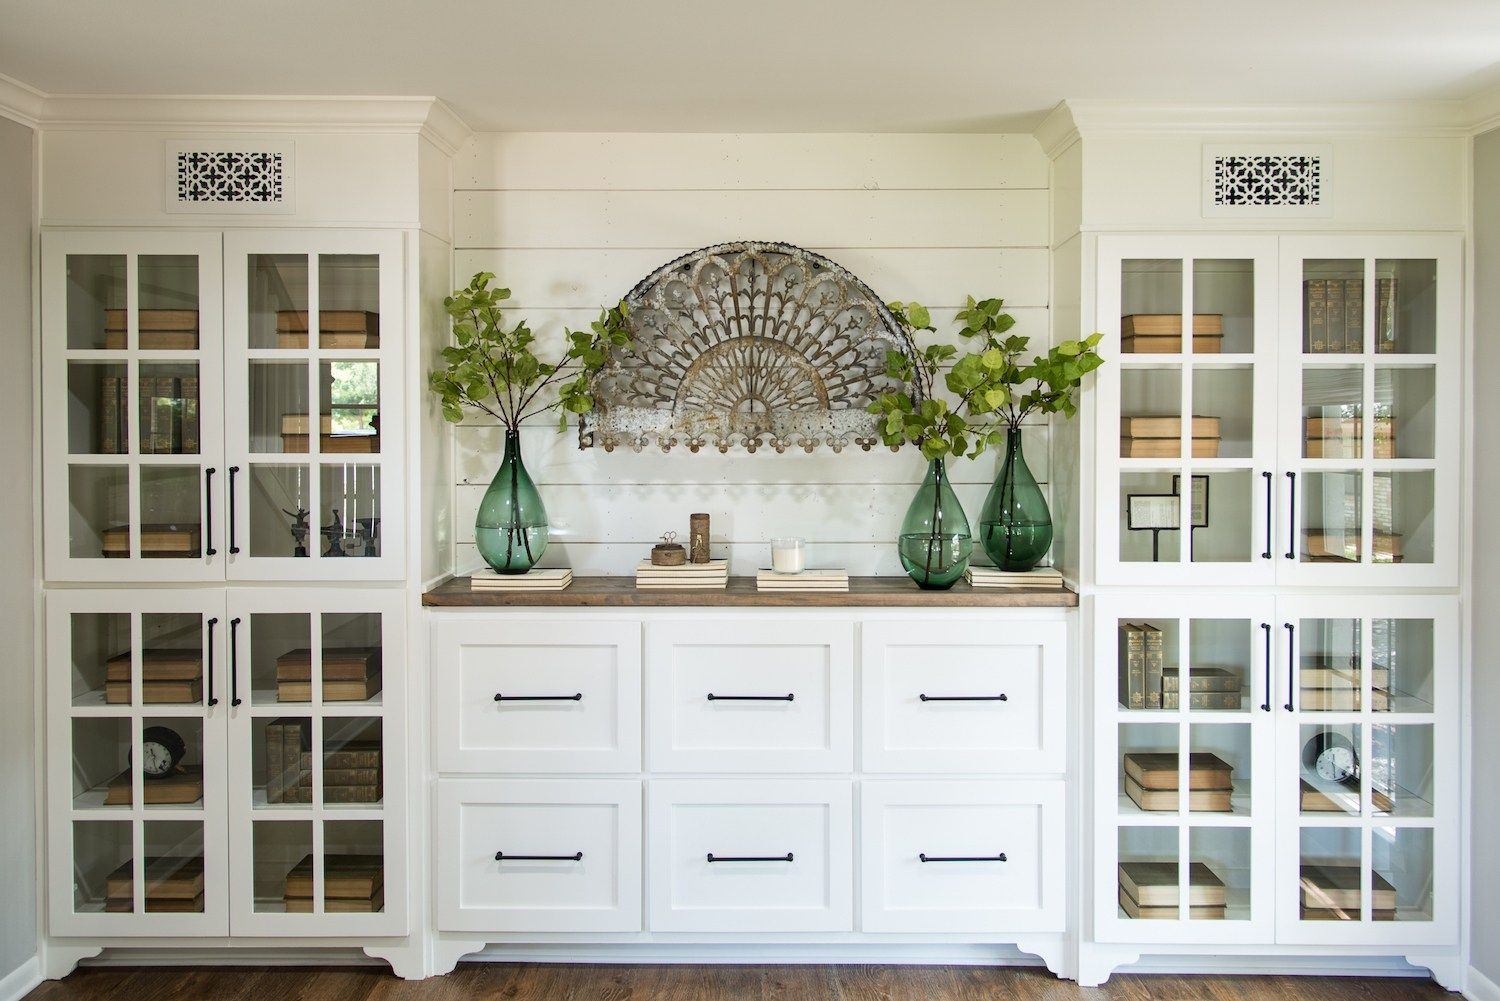 Fixer upper kitchens season 4 - Fixer Upper Season 4 Episode 11 The Prickly Pear House Chip And Joanna Gaines